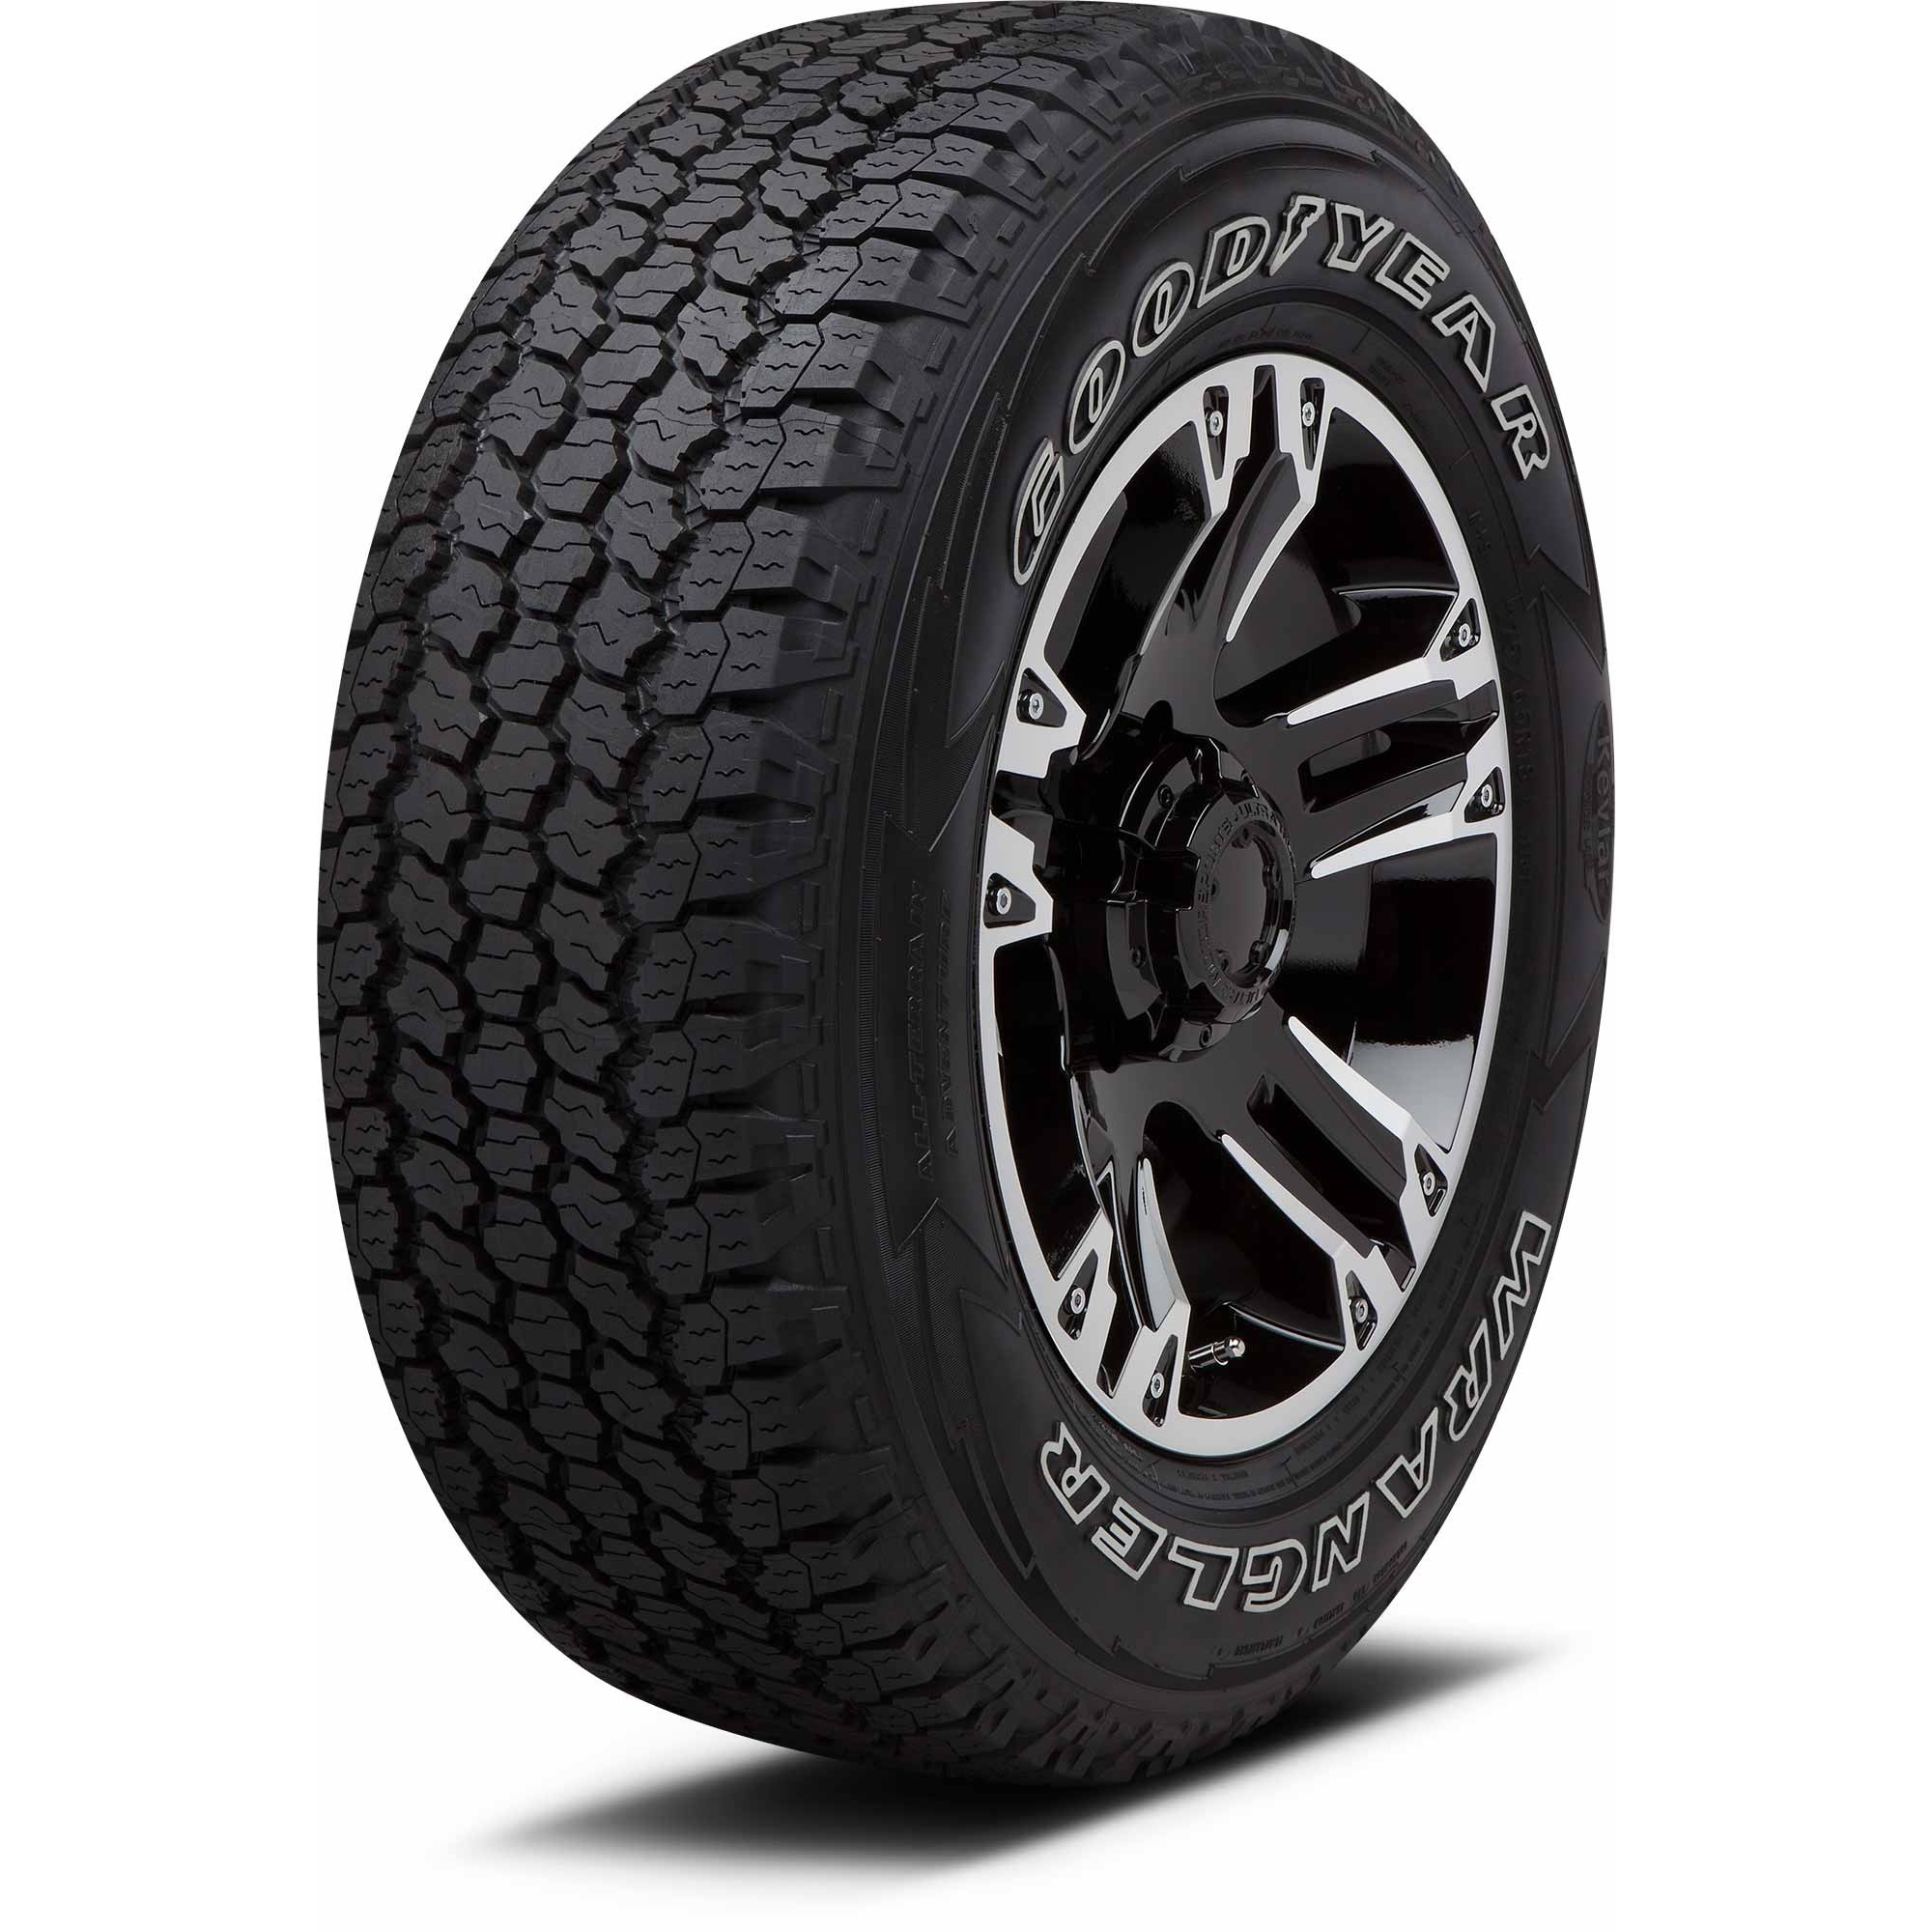 Goodyear Wrangler AT Adventure 245/75 R15 109S off road, 4x4, suv nyári gumi